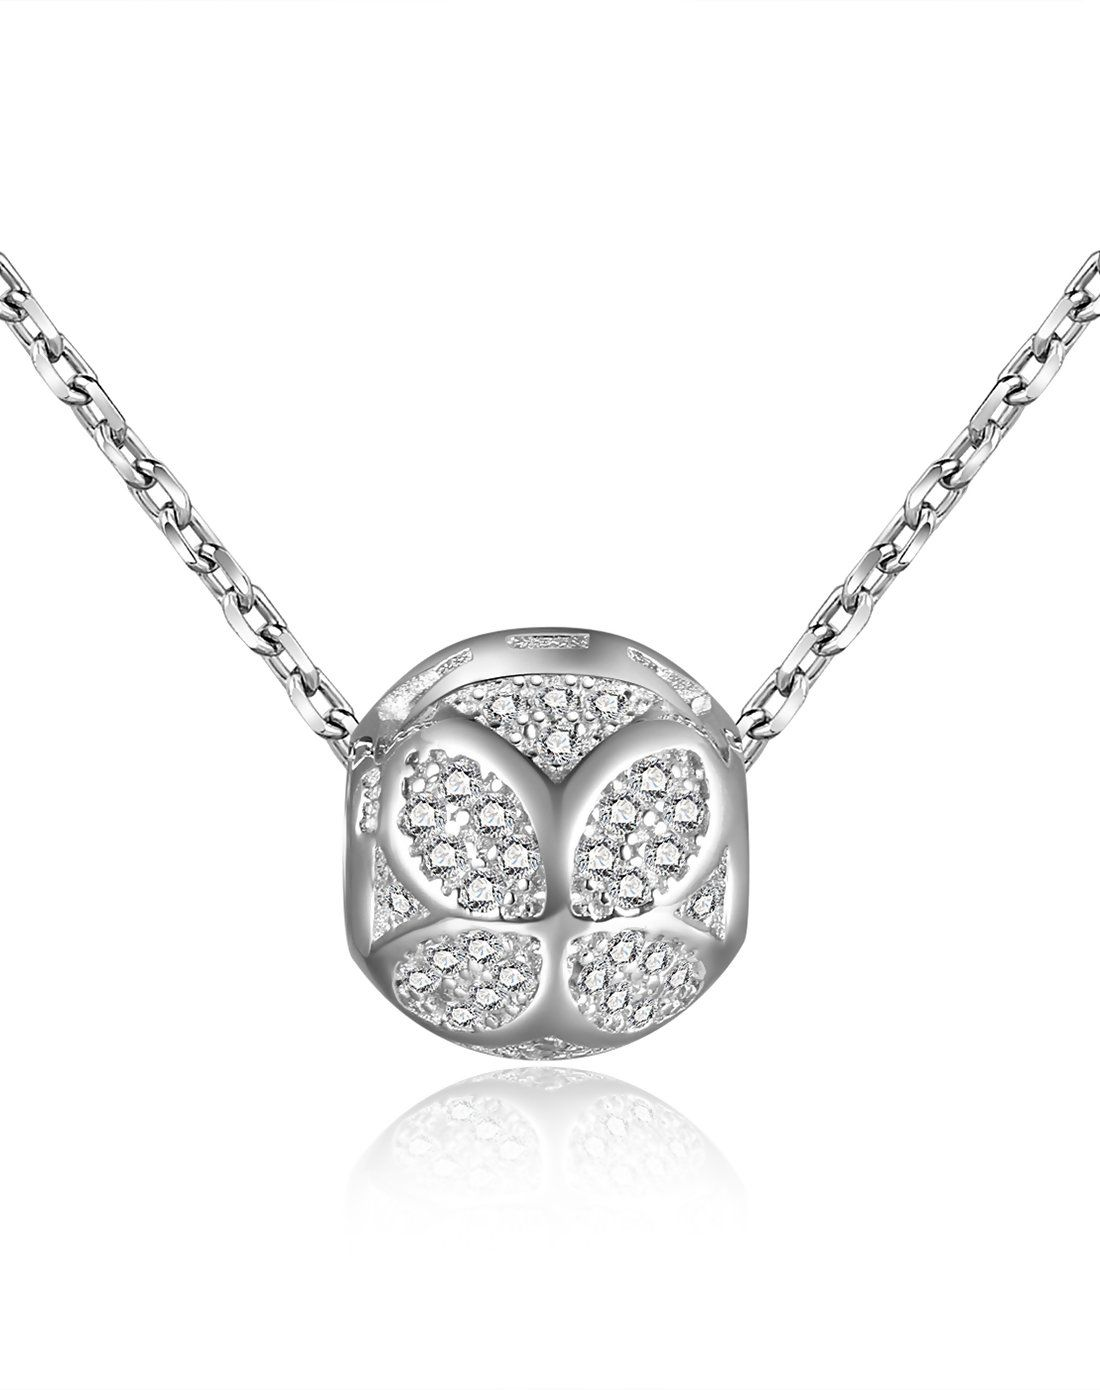 Adorewe vipme necklaces ching ying silver full zircon lucky